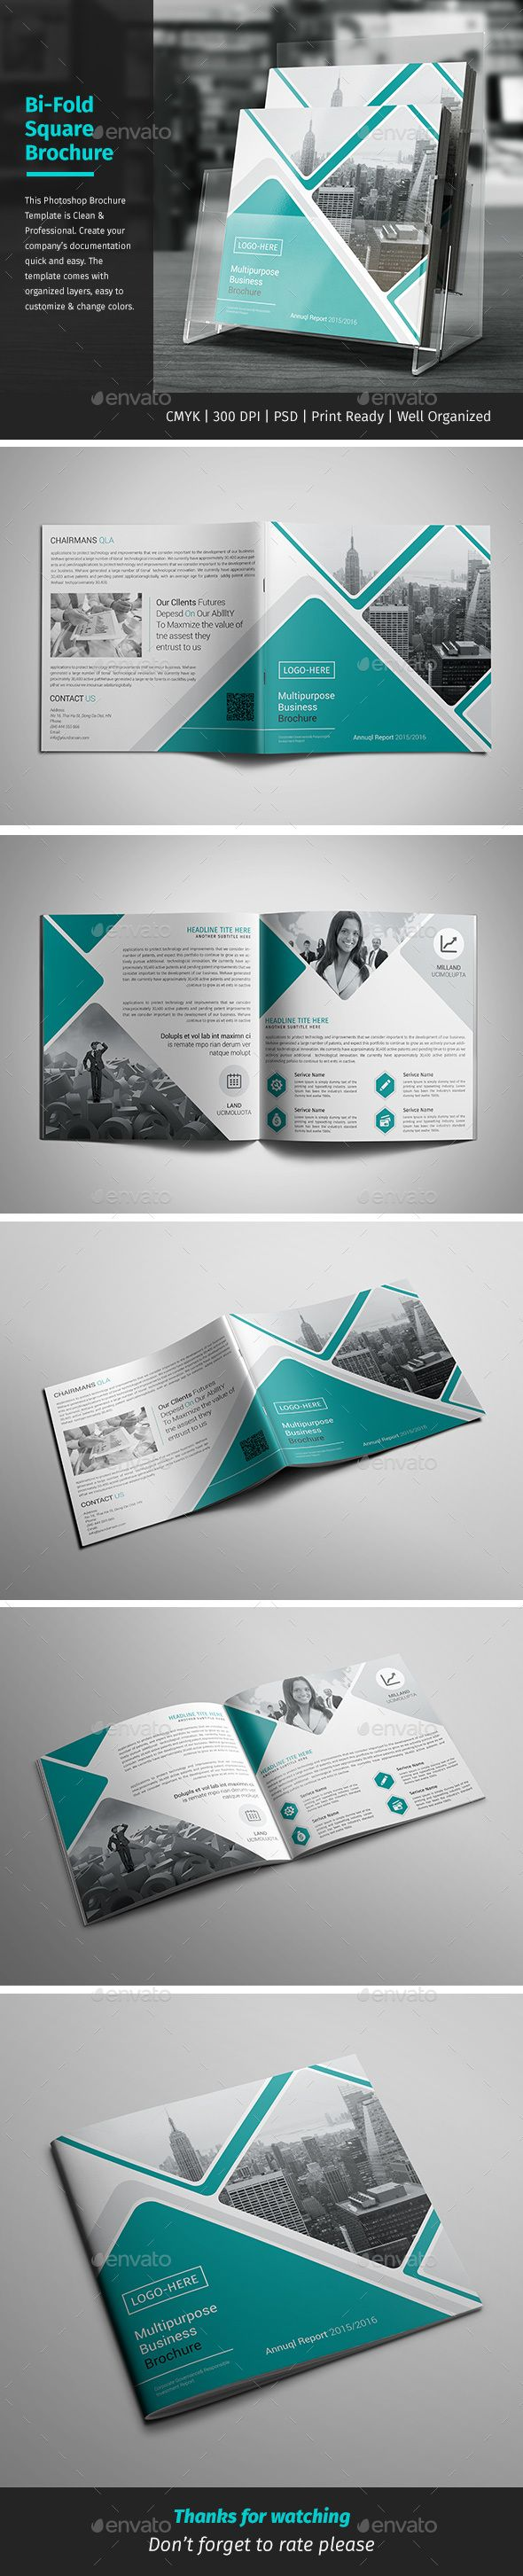 Corporate Bi-fold Square Brochure Template PSD. Download here: http://graphicriver.net/item/-corporate-bifold-square-brochure-01/15641626?ref=ksioks